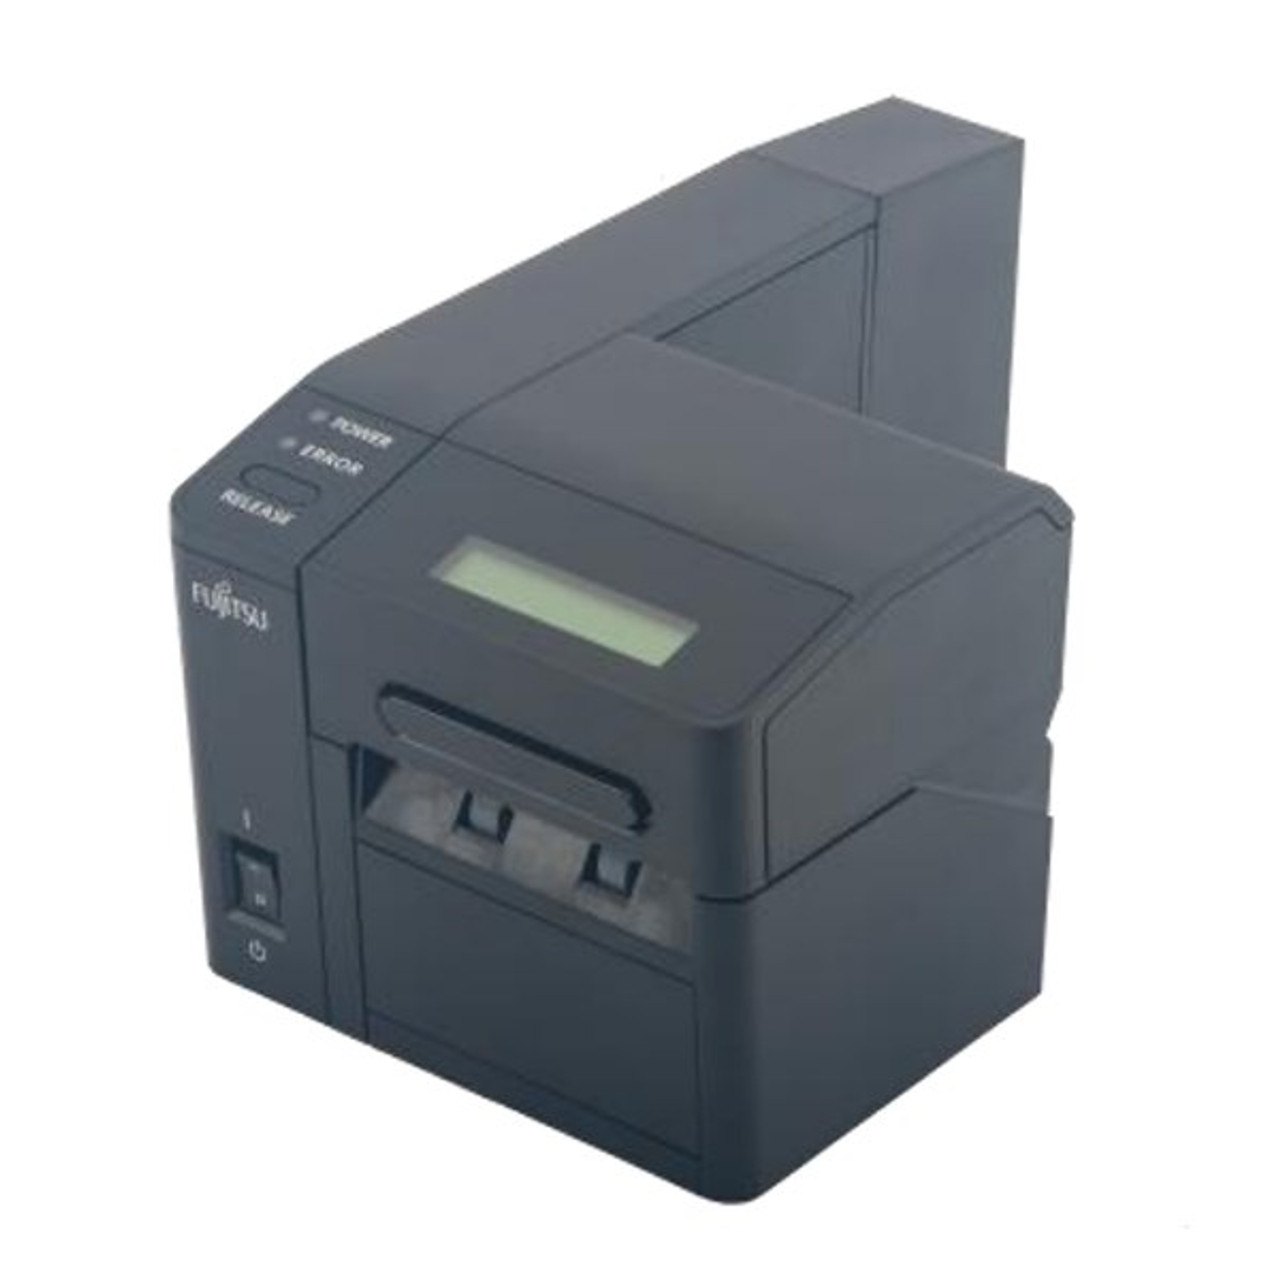 Image for Fujitsu F9870 Compact Boarding Pass & Baggage Tag Printer (w/ LCD) CX Computer Superstore